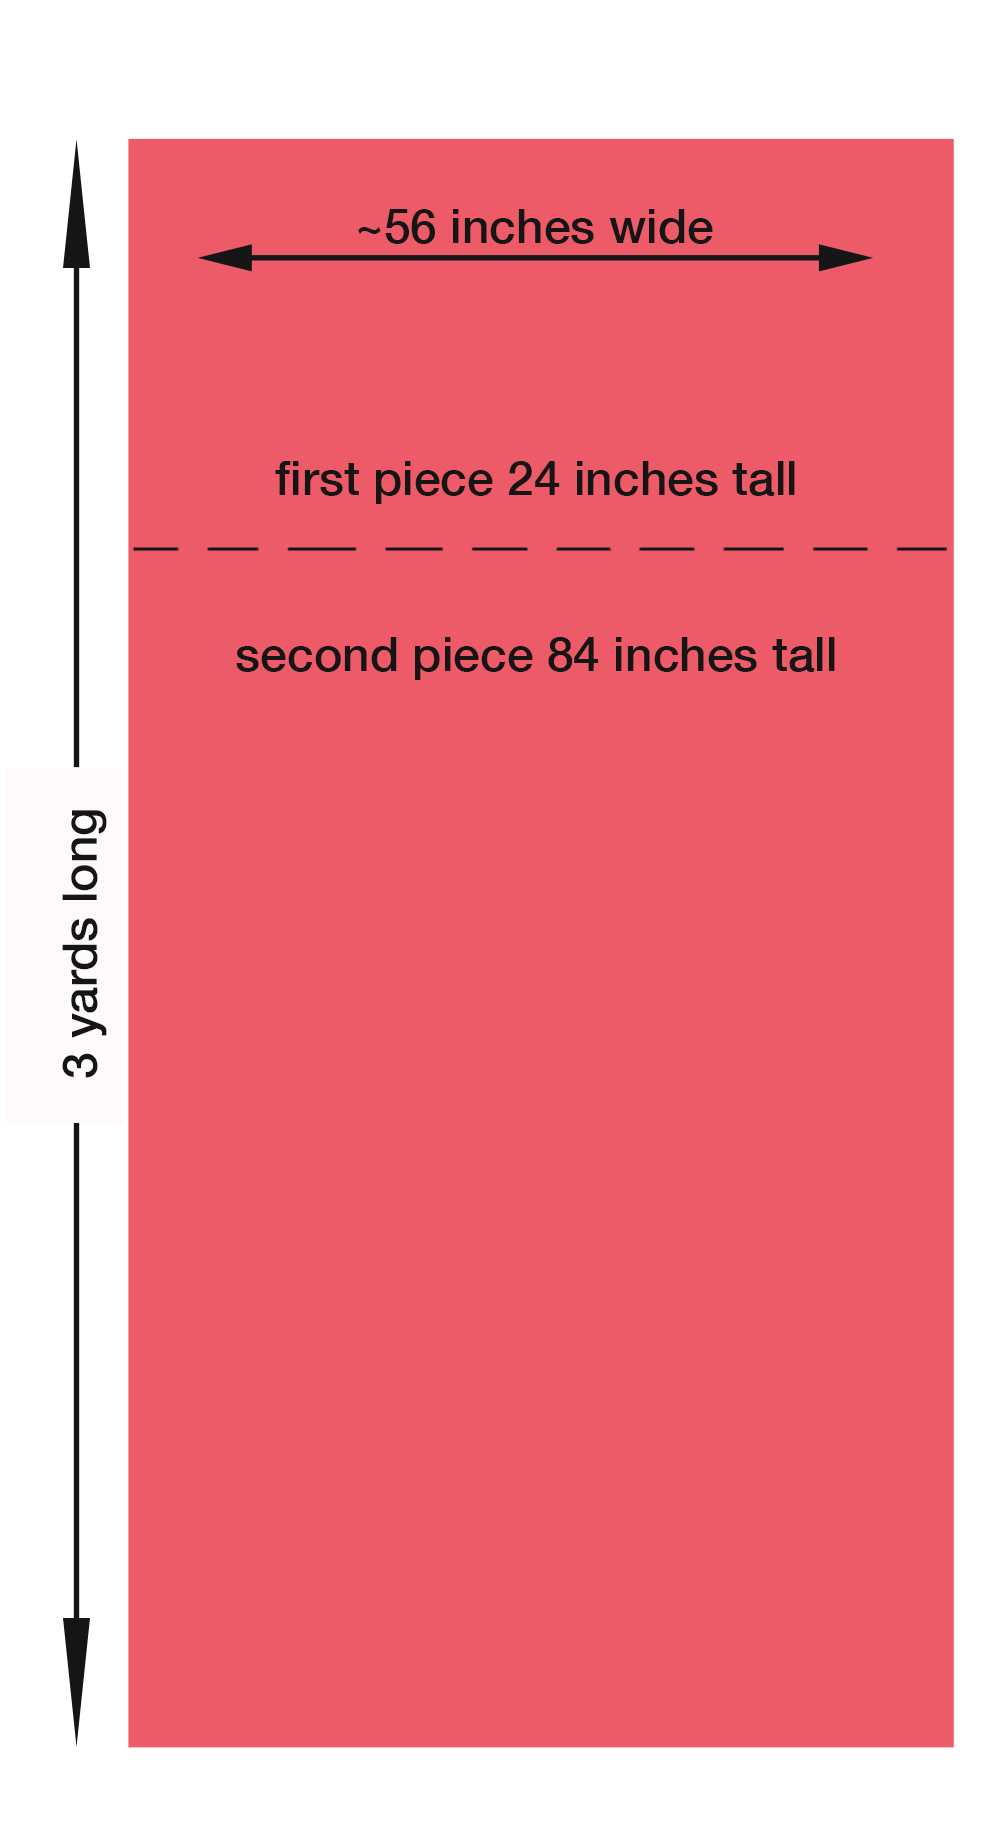 Diagram showing 3 yards of fabric, cutting a piece from the top that is 24 inches tall